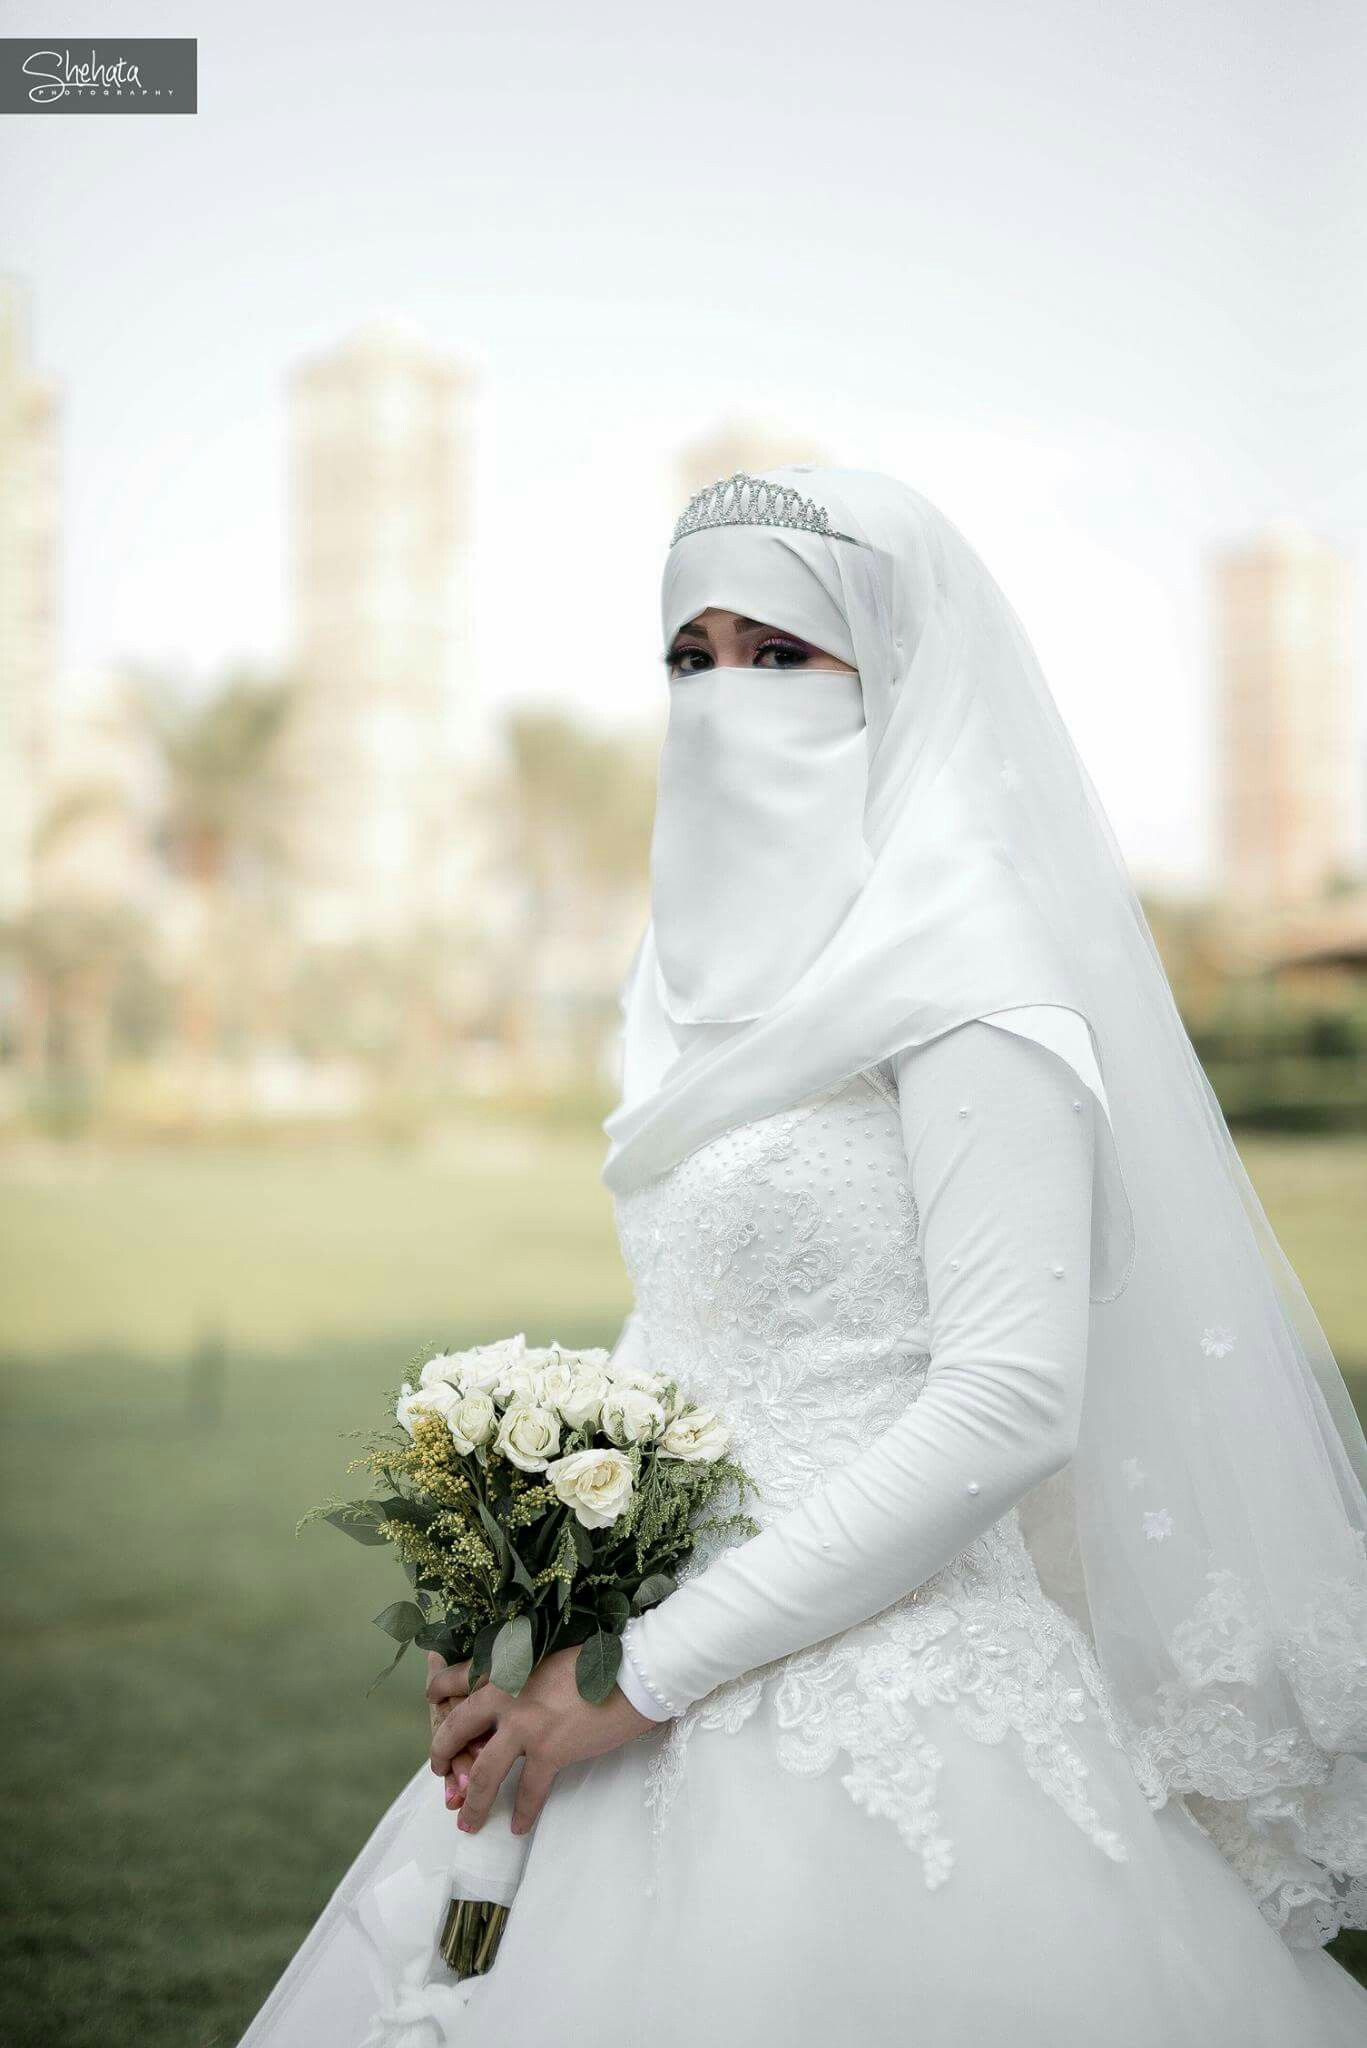 Niqabi bride niqabi brides pinterest niqab muslim for Wedding dresses for muslim brides